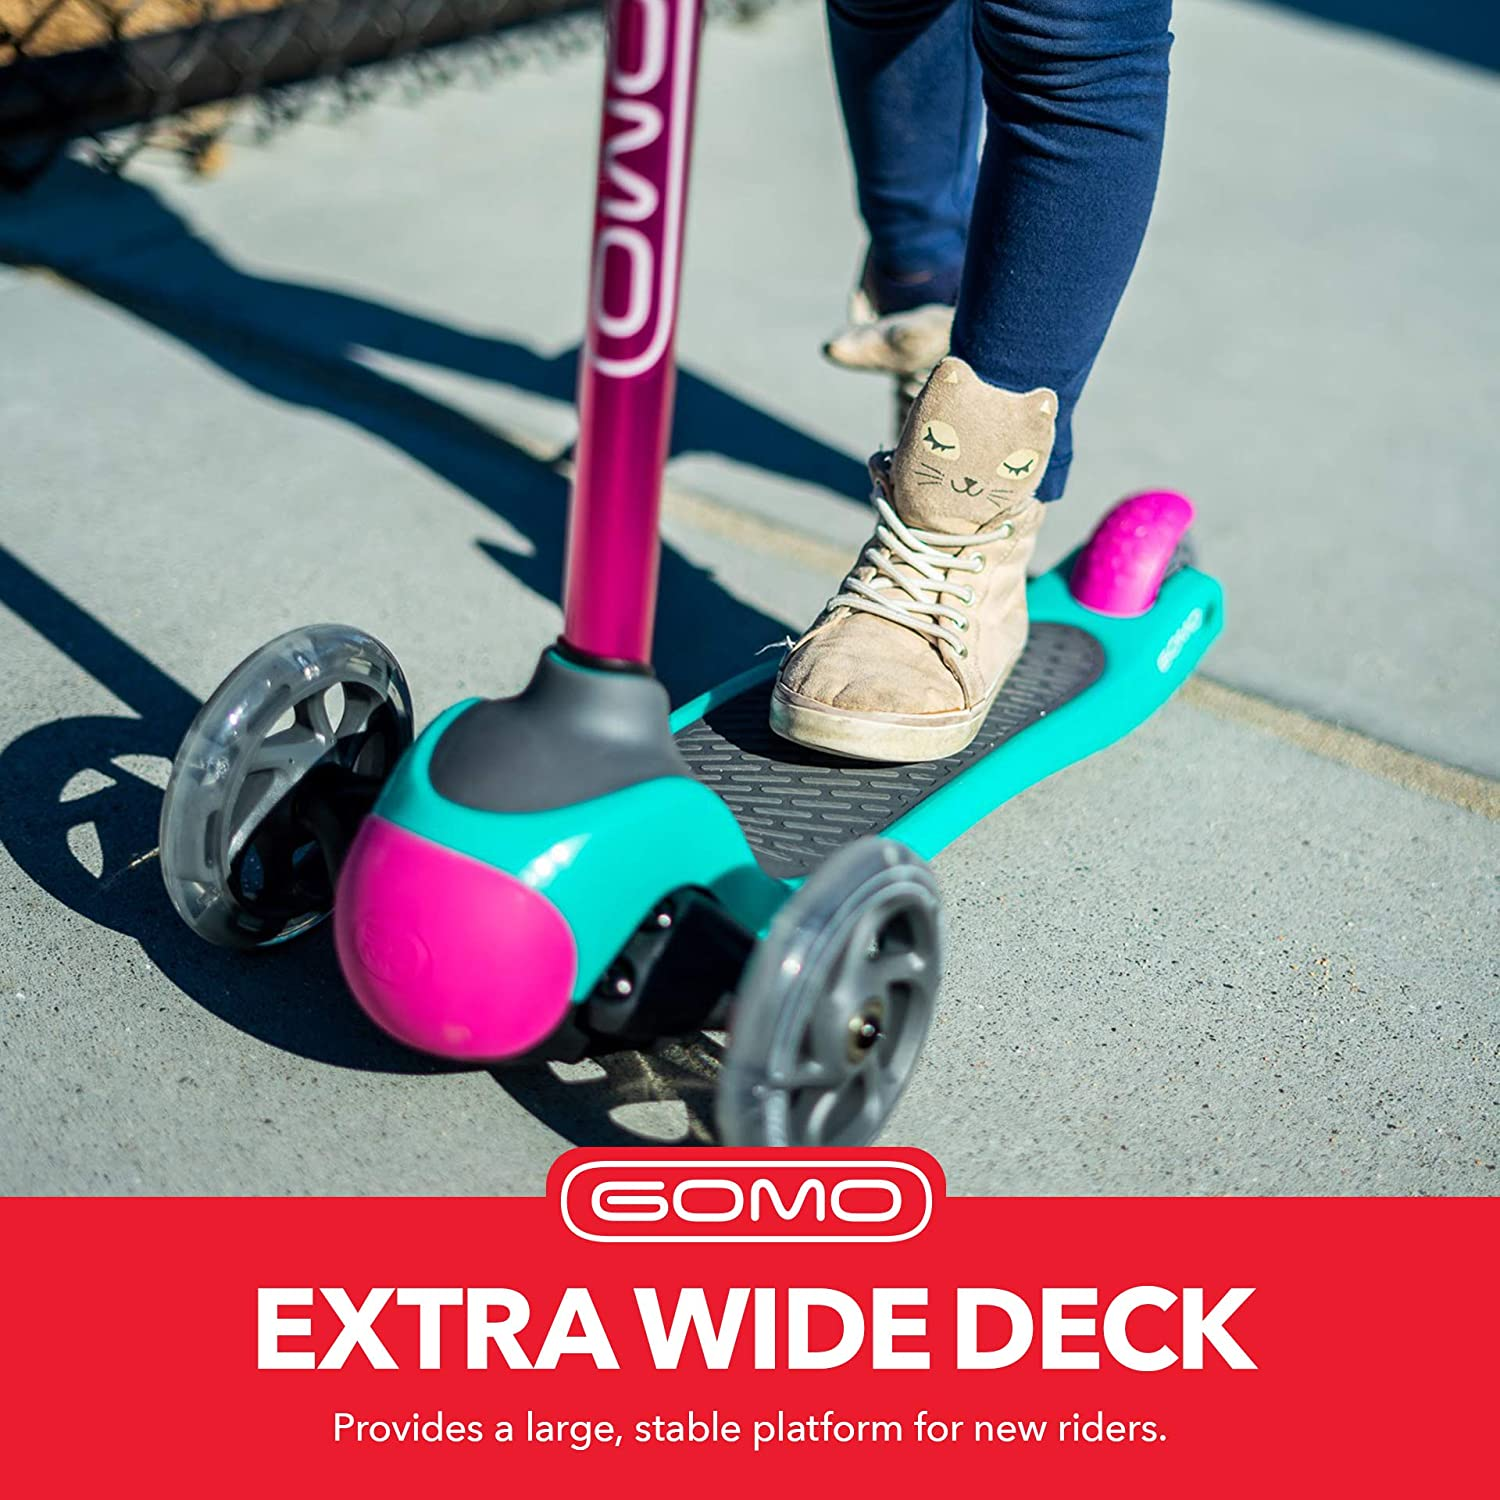 Three Wheel Scooter for Kids 2 GOMO 3 Wheel Scooter 4 and 5 Years Old Toddler Scooter Adjustable Height Kick Scooter w//Colors for Boys /& Girls 3